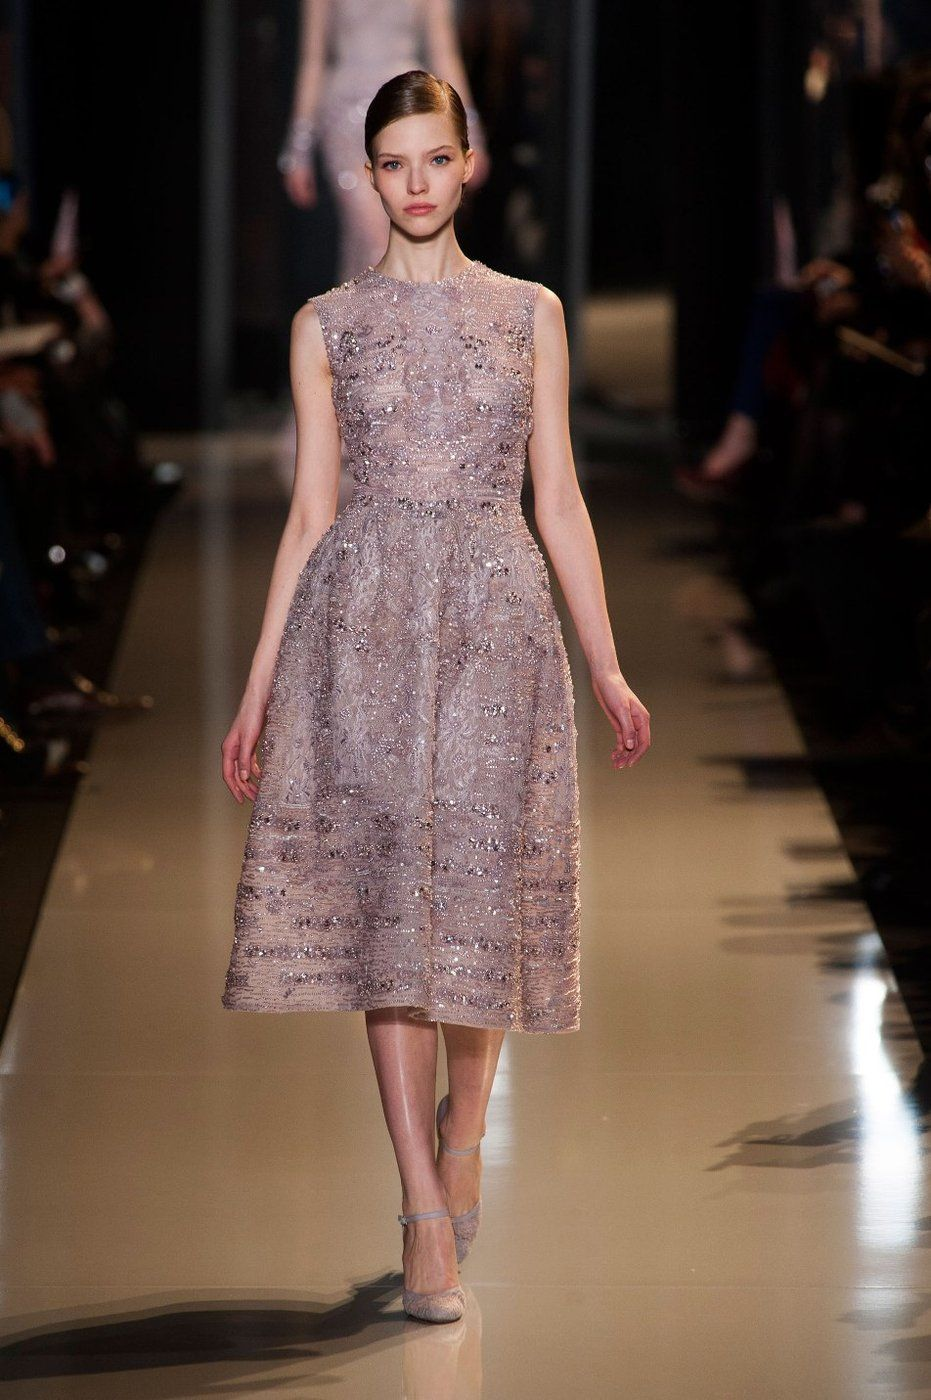 Elie saab haute couture spring an ode to delicateness elie